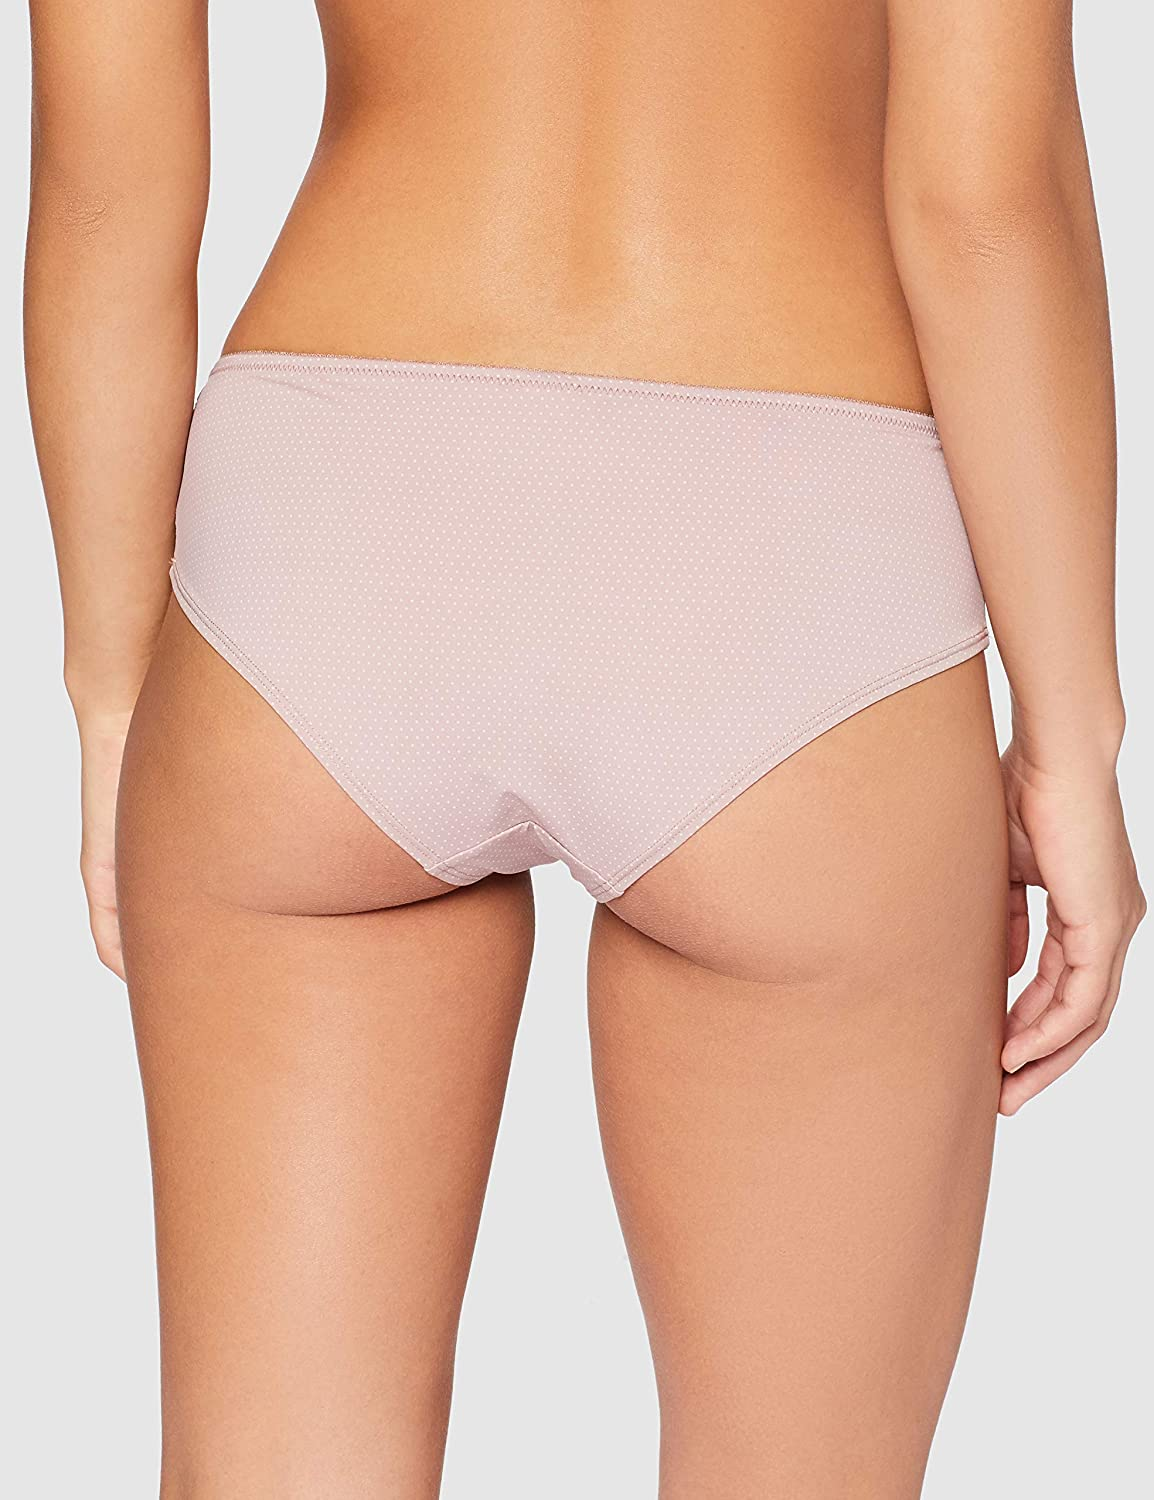 Brand Iris /& Lilly Womens Microfibre Cheeky Hipster Pack of 3